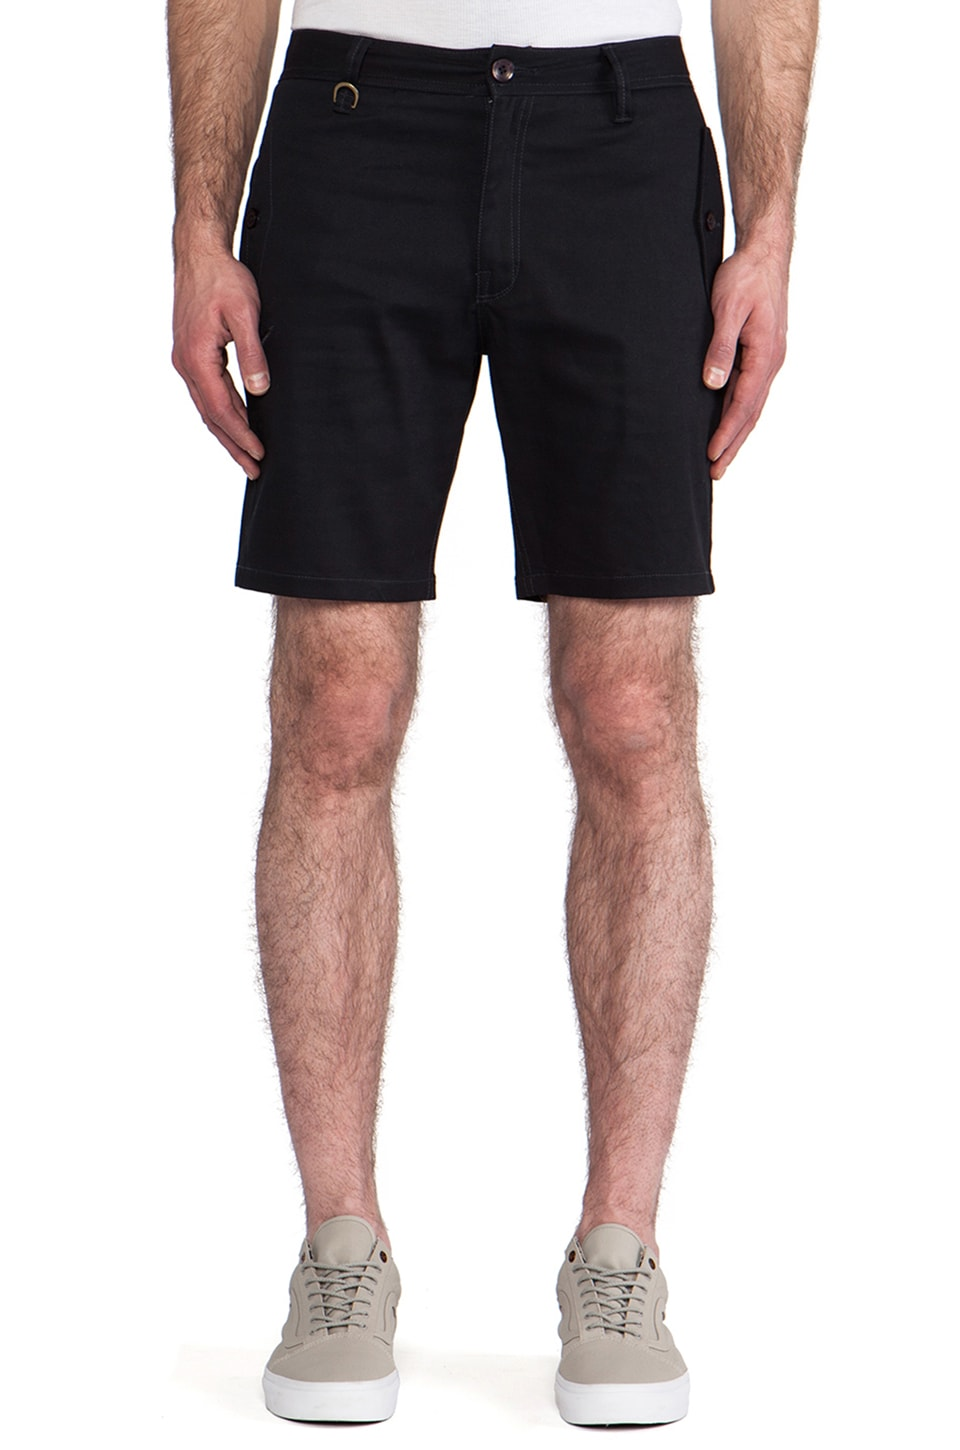 Publish Gavin Shorts in Navy